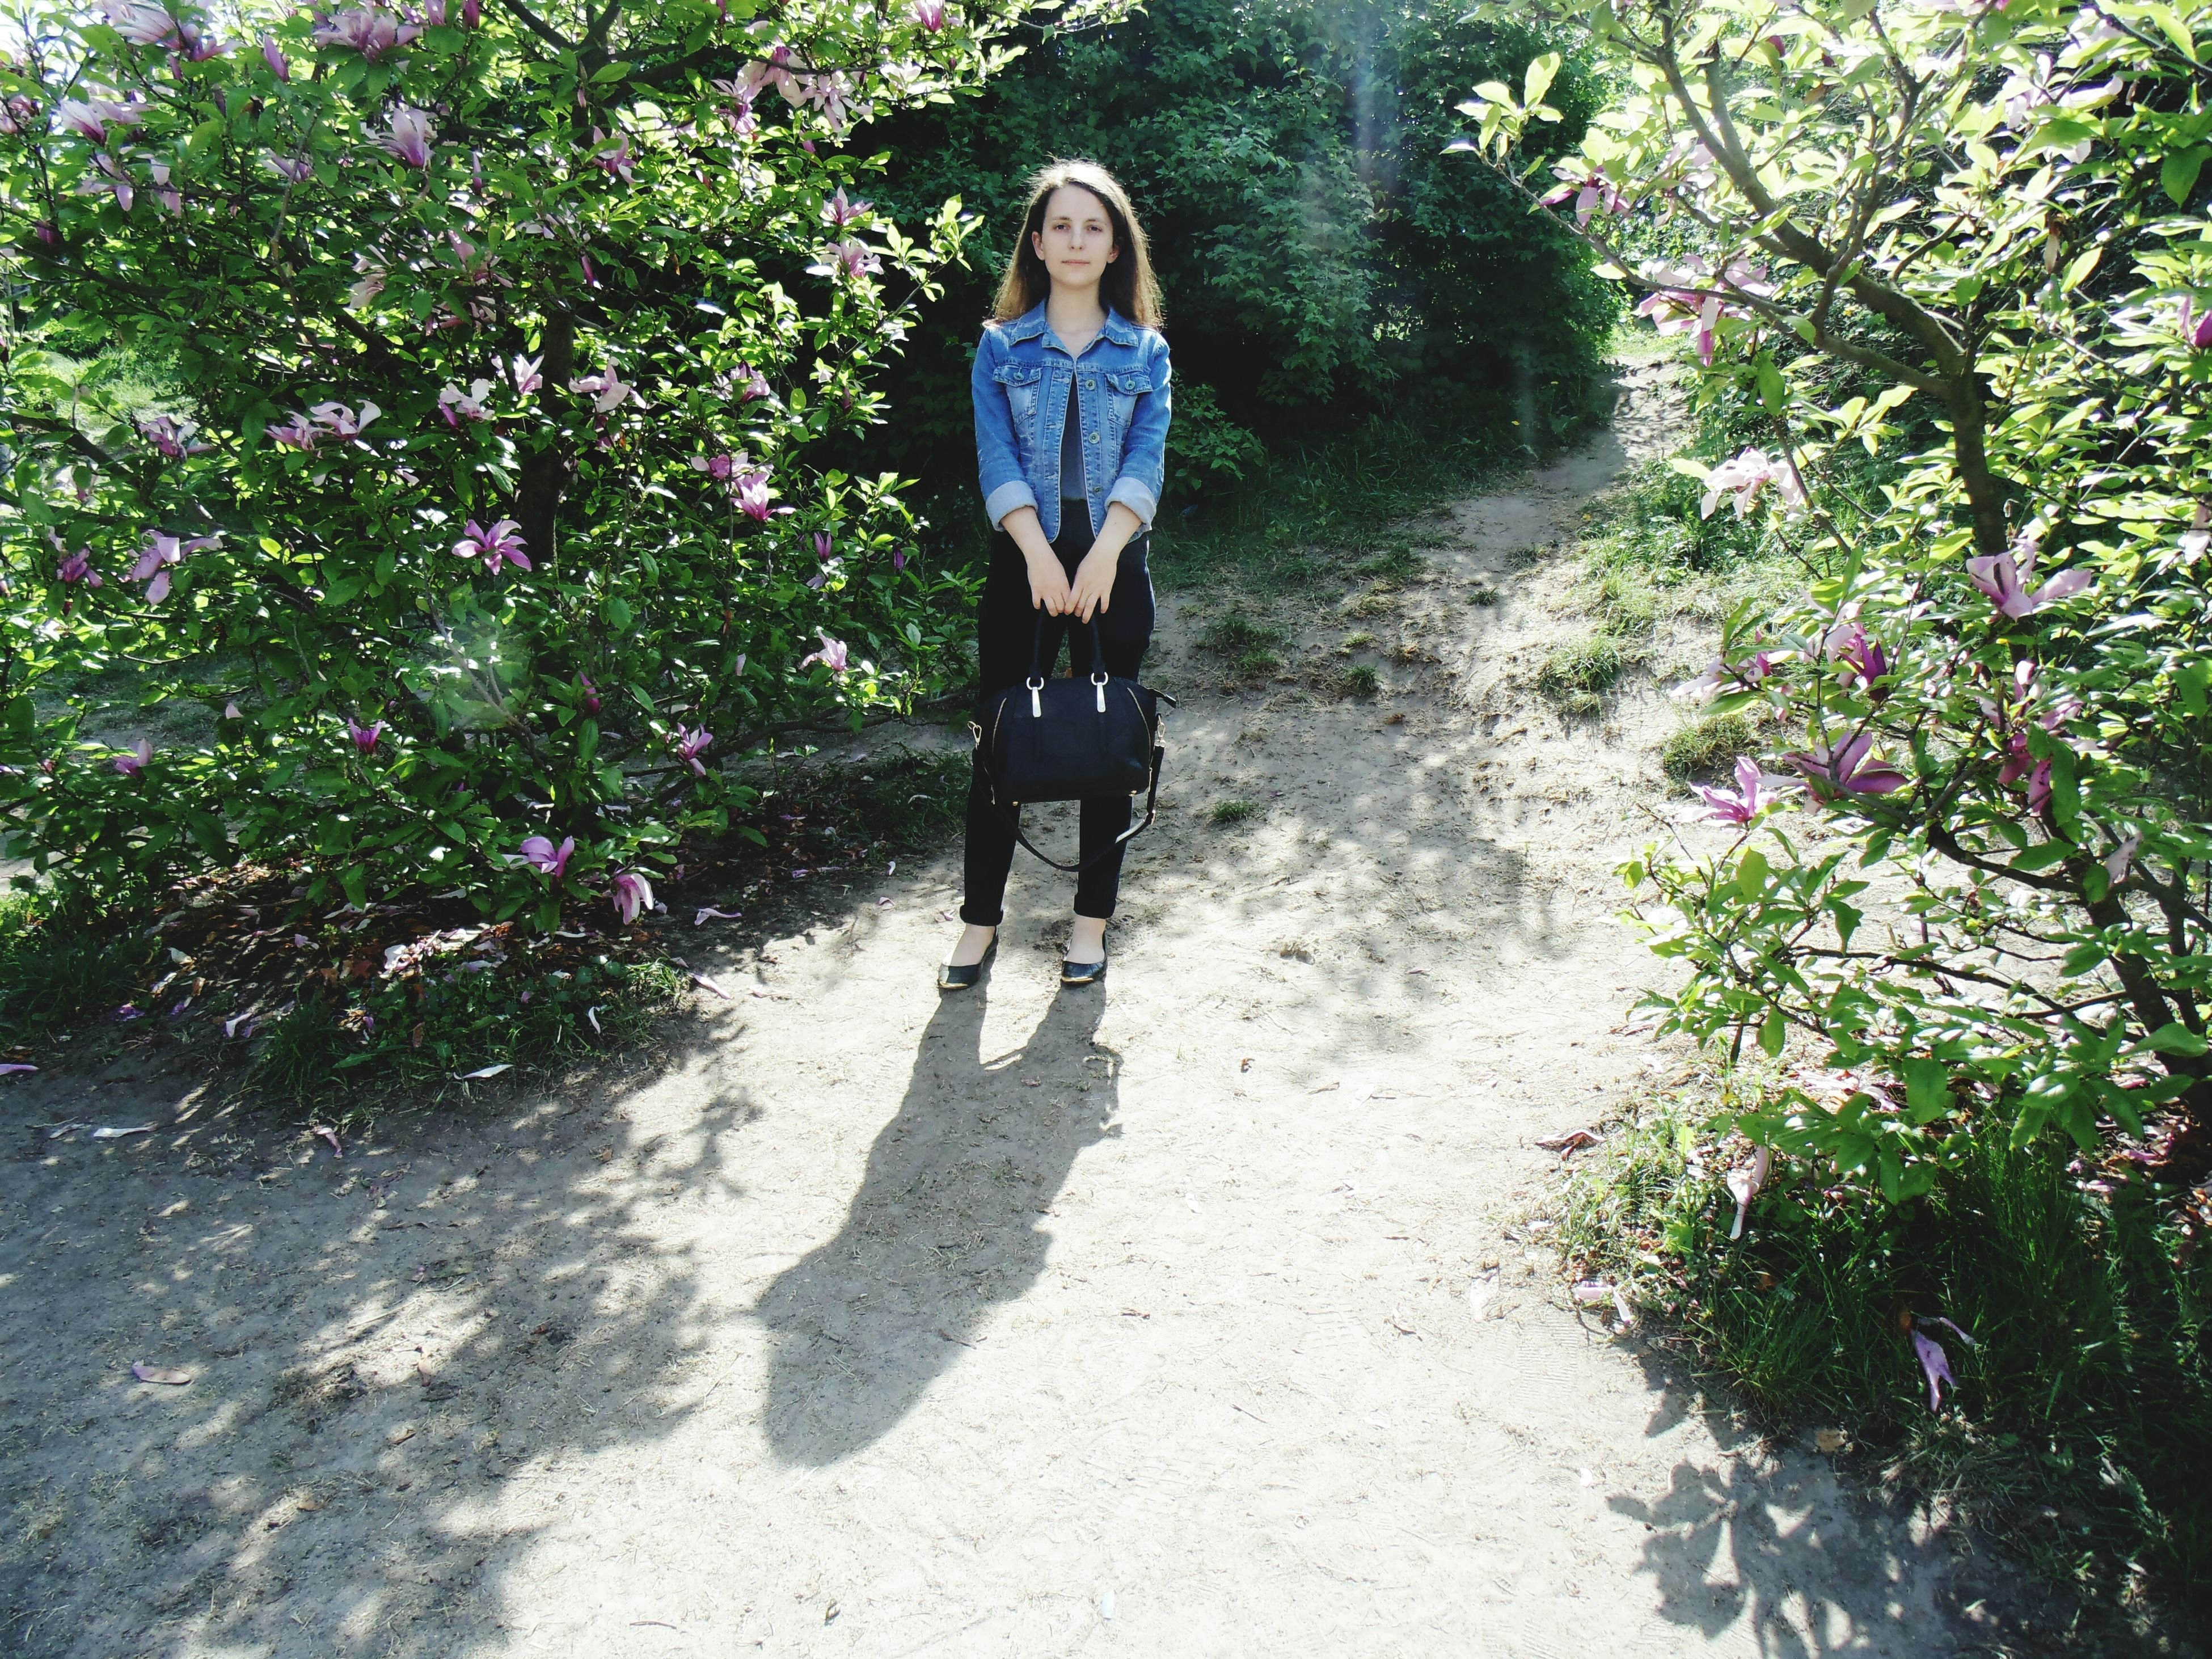 real people, front view, full length, one person, day, plant, lifestyles, young women, nature, leisure activity, outdoors, young adult, tree, casual clothing, sunlight, growth, standing, shadow, looking at camera, beautiful woman, flower, people